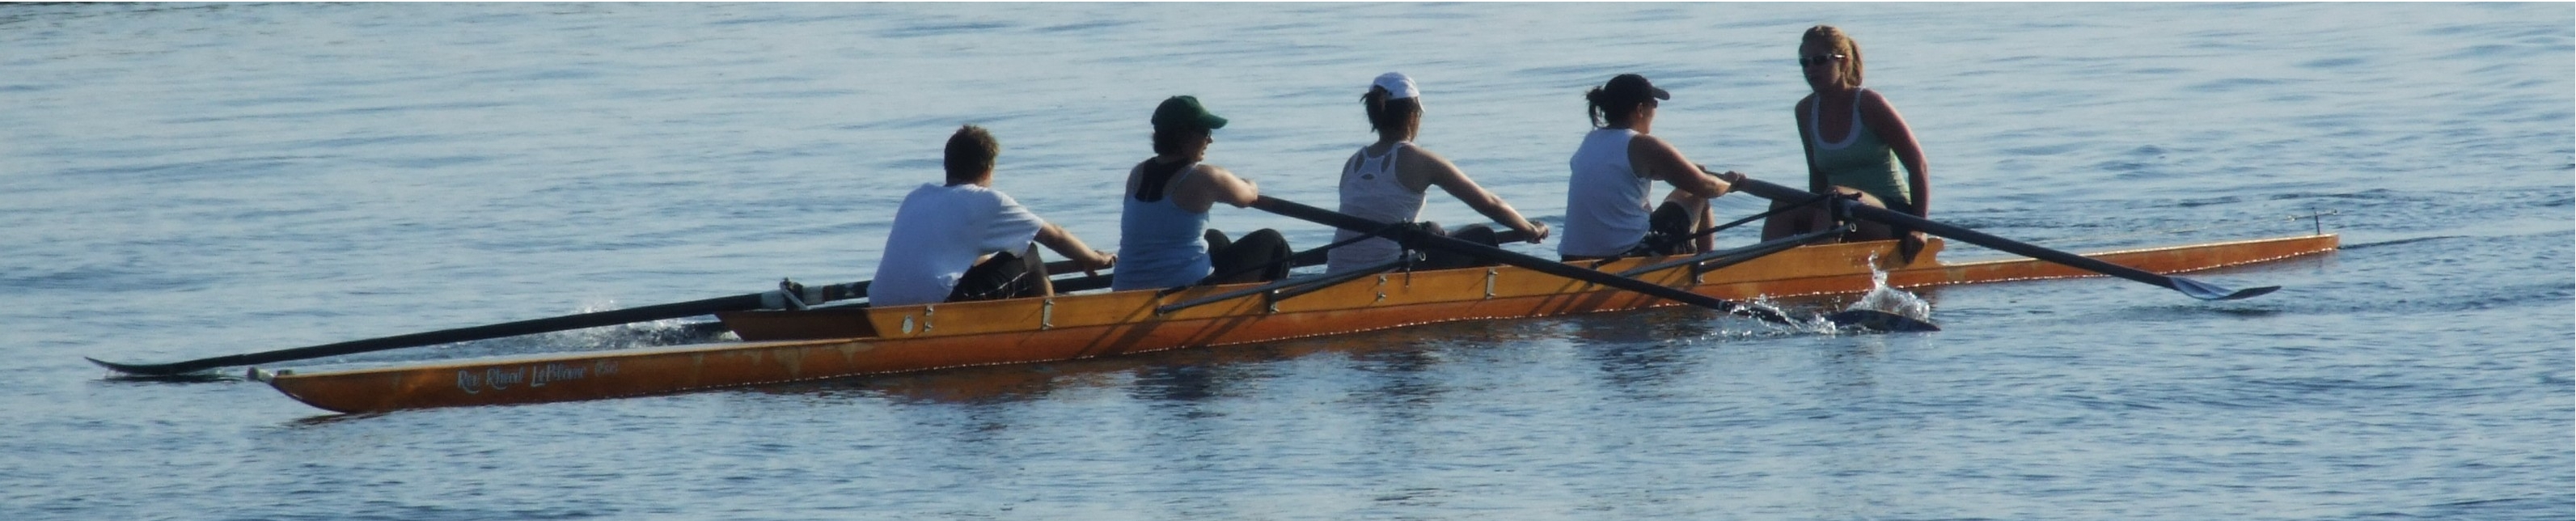 Toronto female rowing team